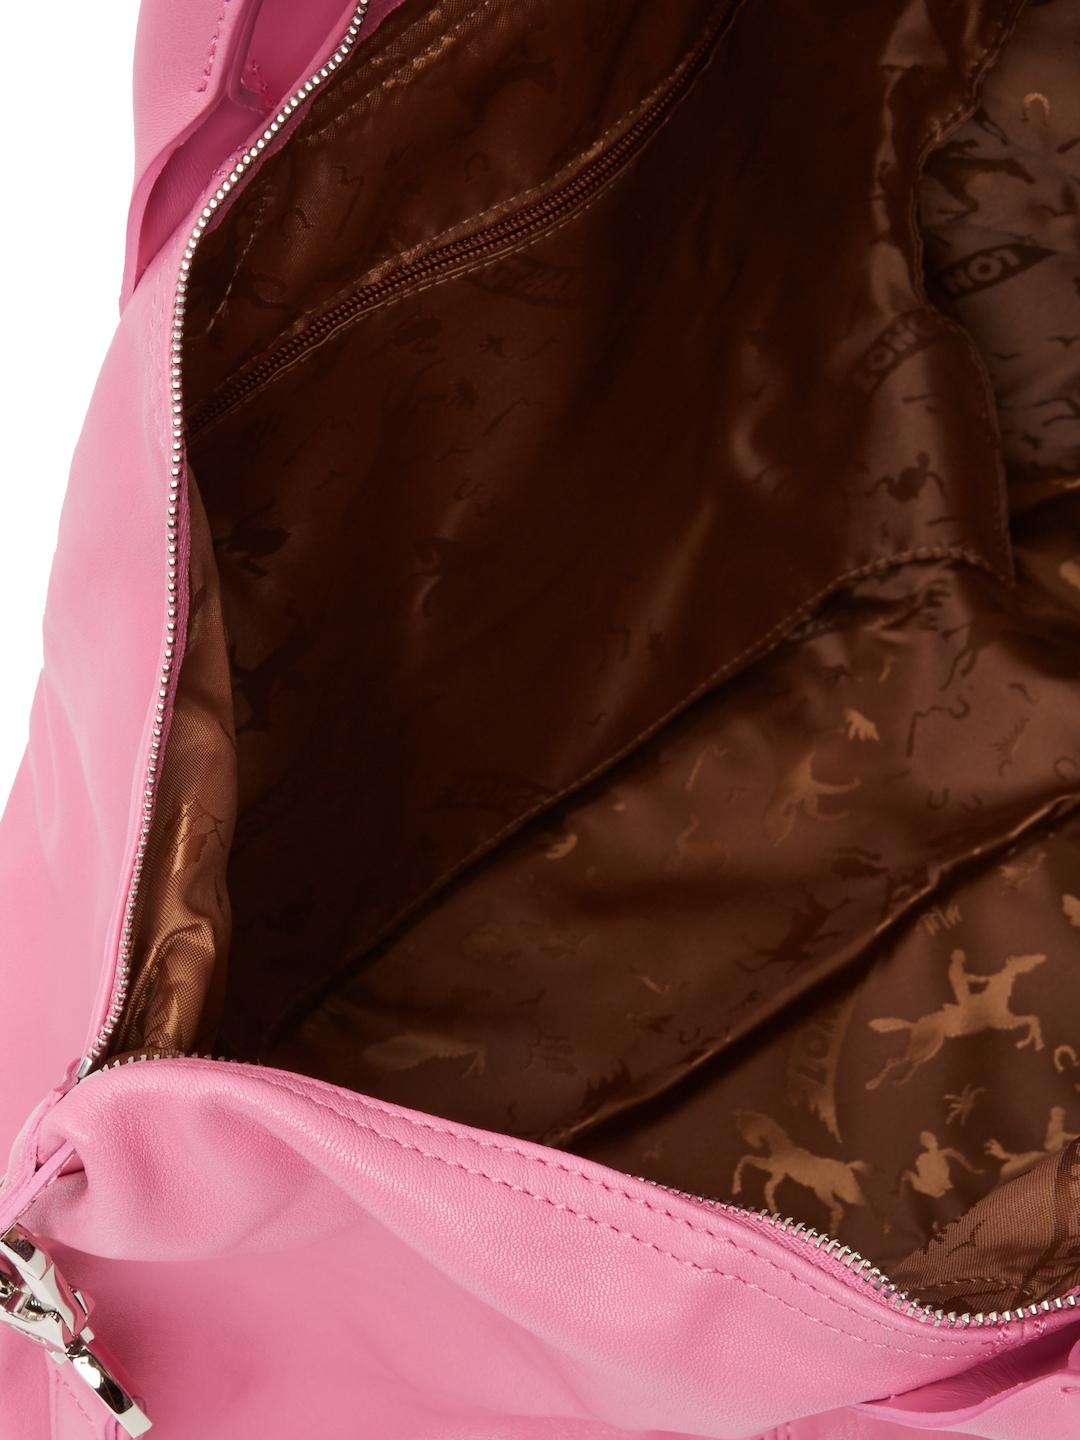 Longchamp Le Pliage Cuir Leather Top Handle in Pink